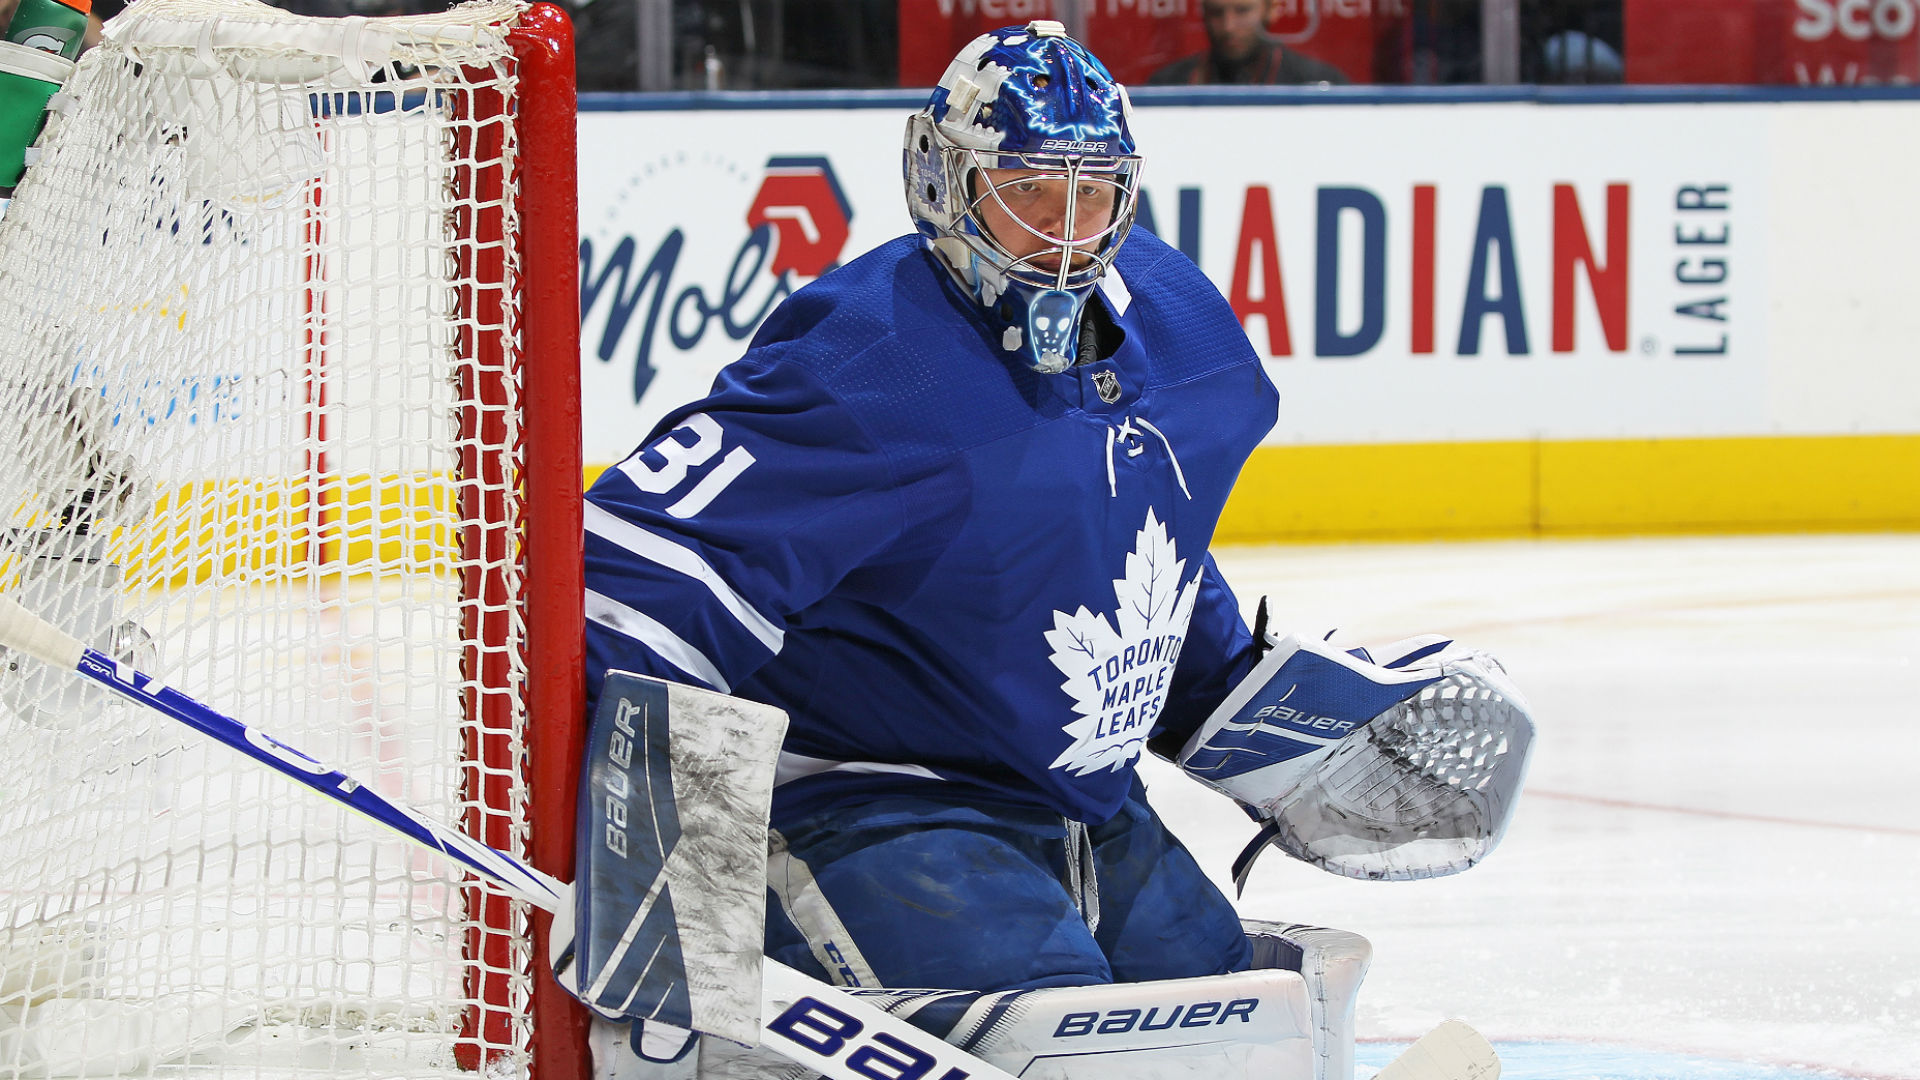 Frederik Andersen injury replace: Toronto Maple Leafs goalie won't start vs. Arizona